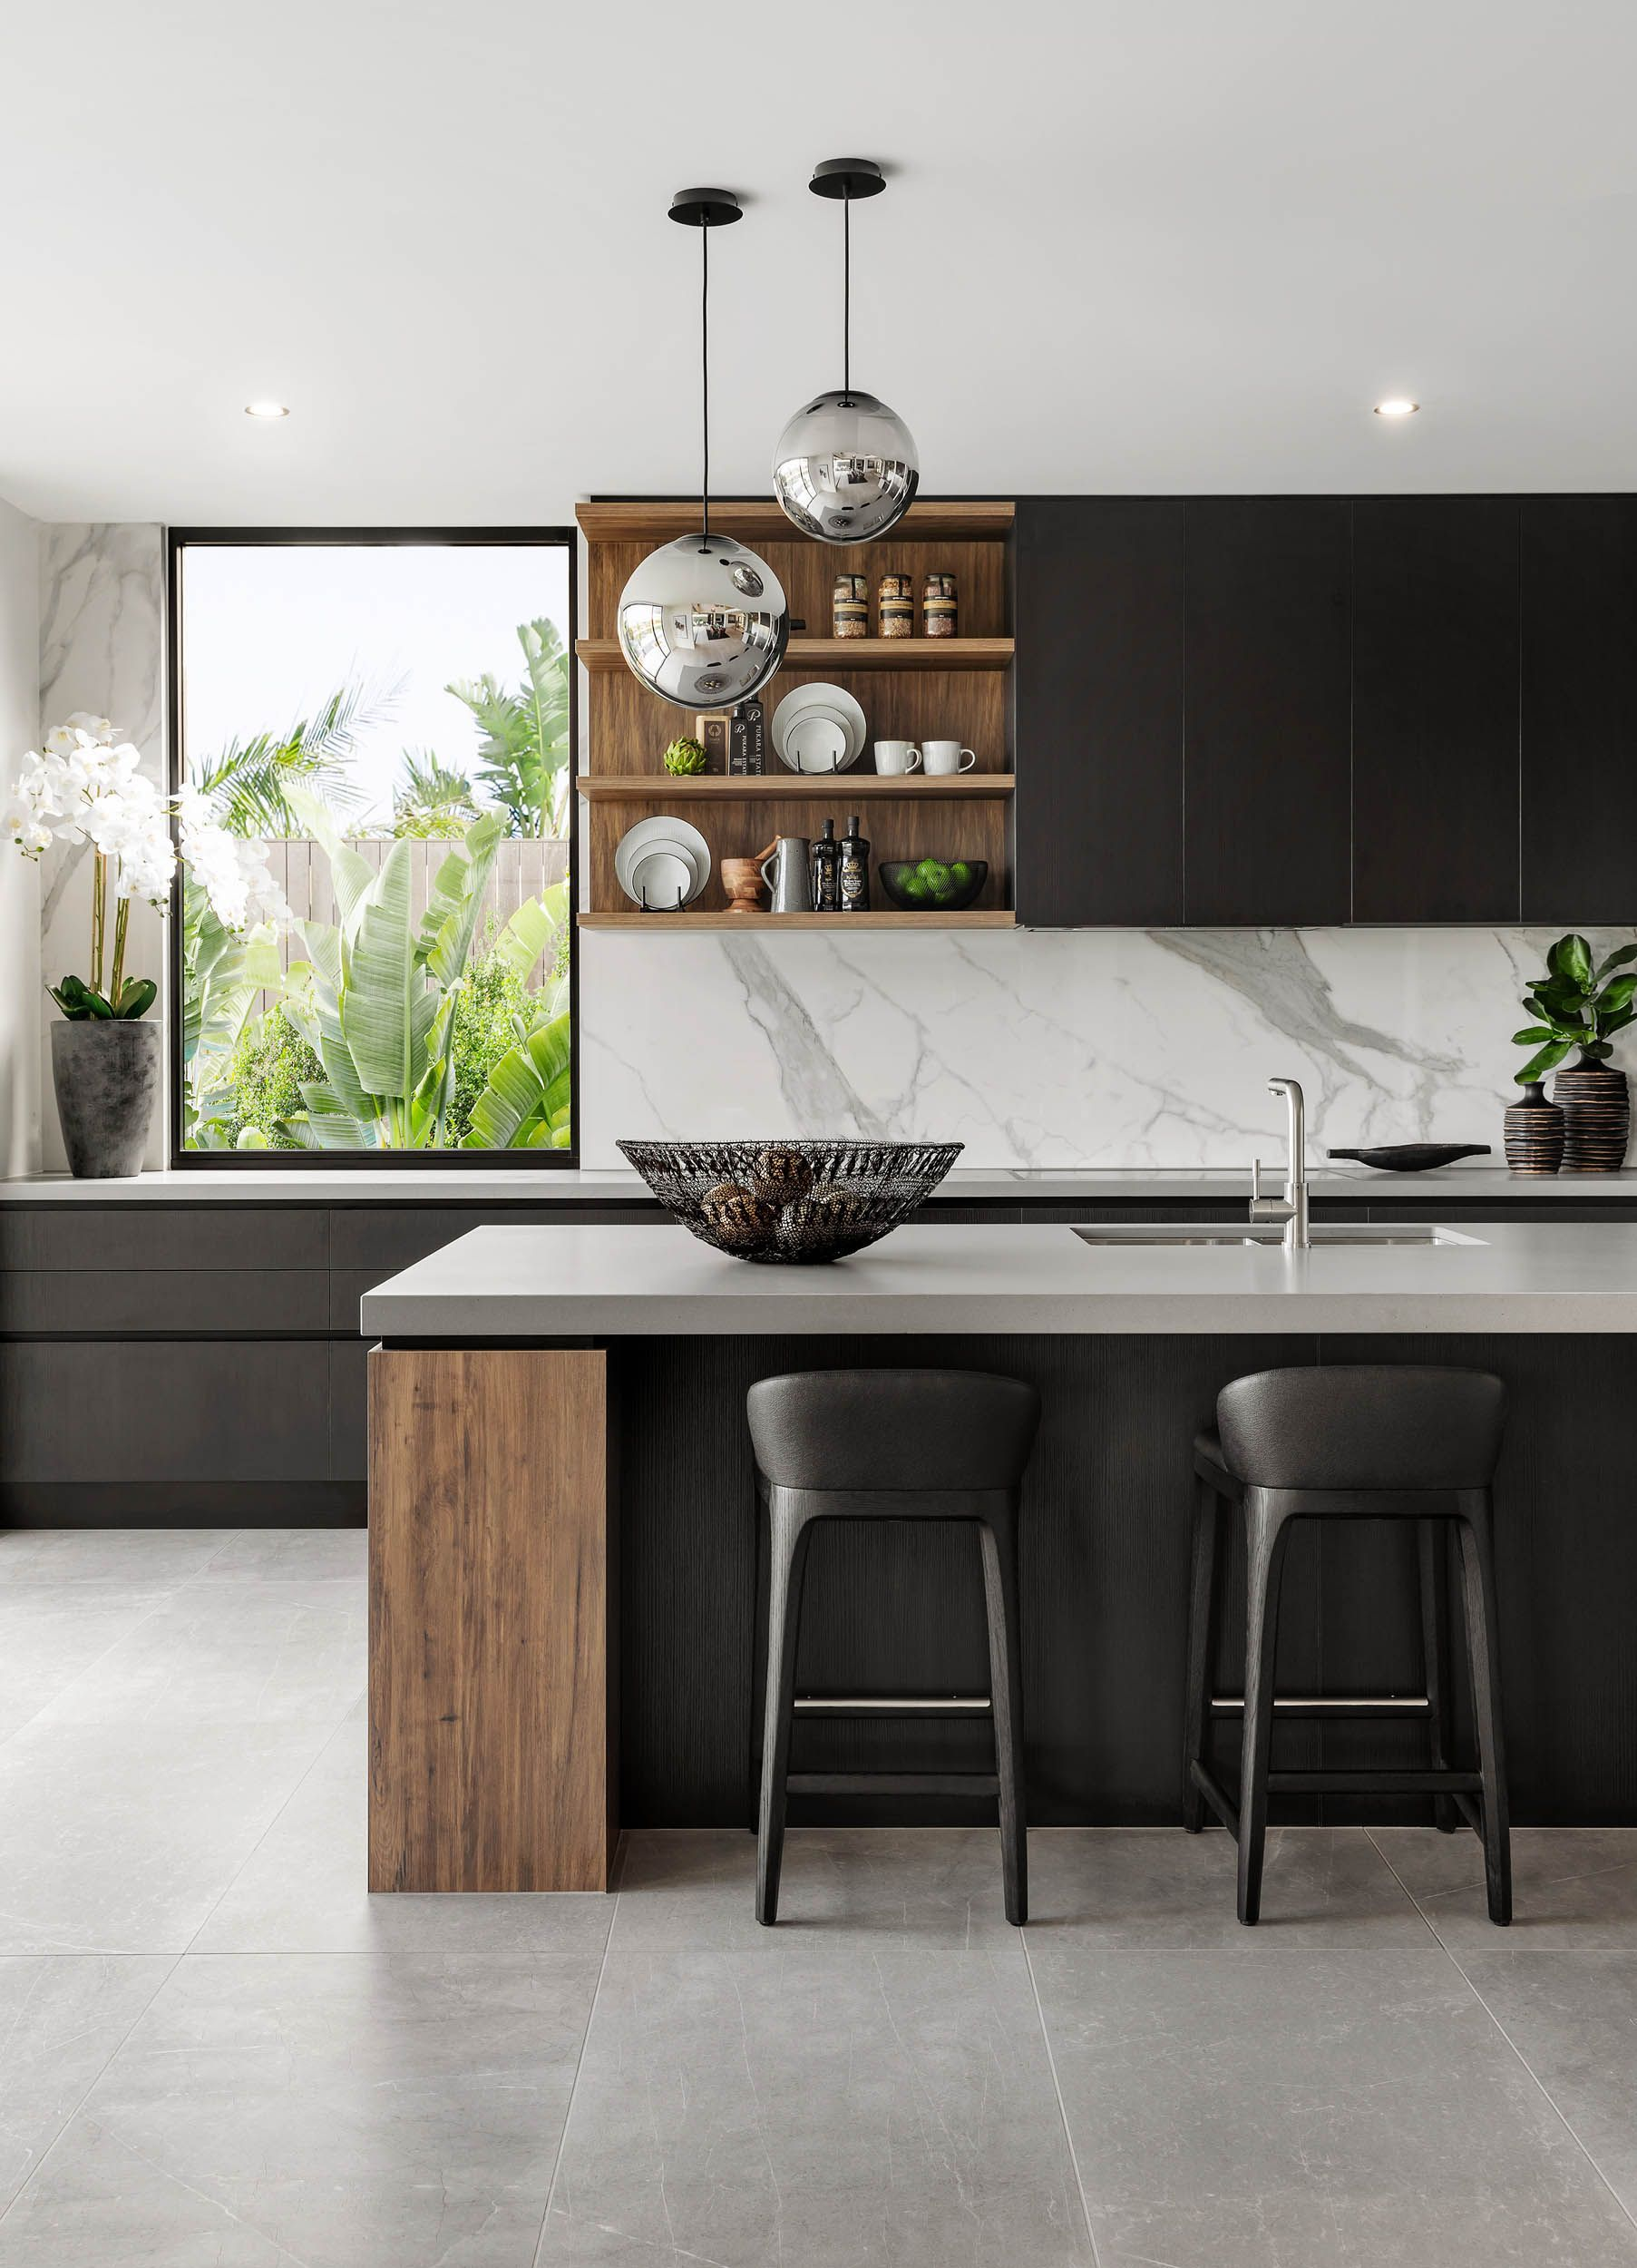 Kitchen the signature by metricon riviera on display in sorrento qld modernkitchen also best minimalist design to avoid boredom your home rh pinterest